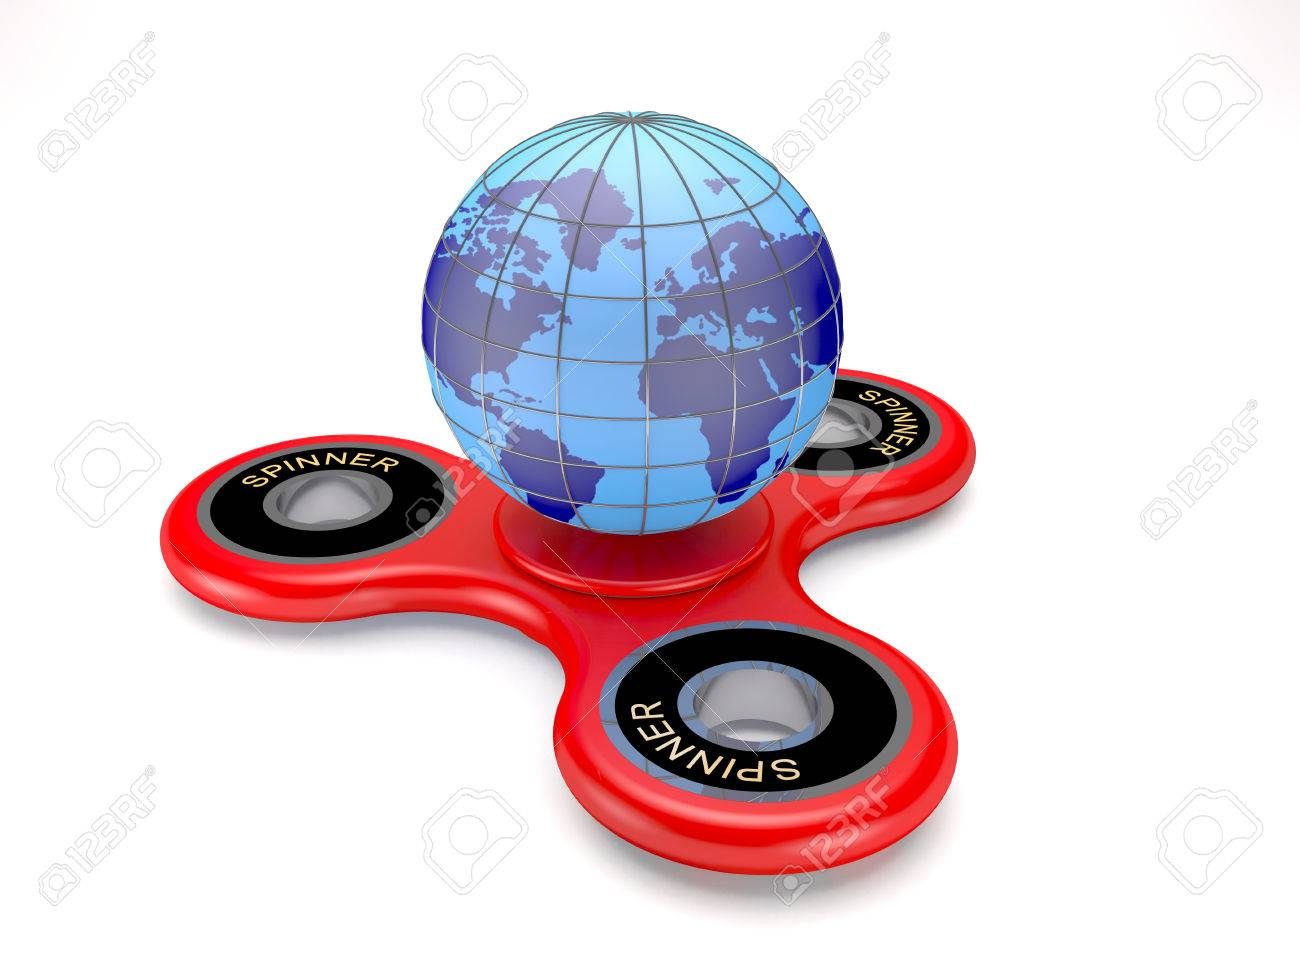 modern toy spinner and earth globe on white background (d  - modern toy spinner and earth globe on white background (d illustration)stock illustration